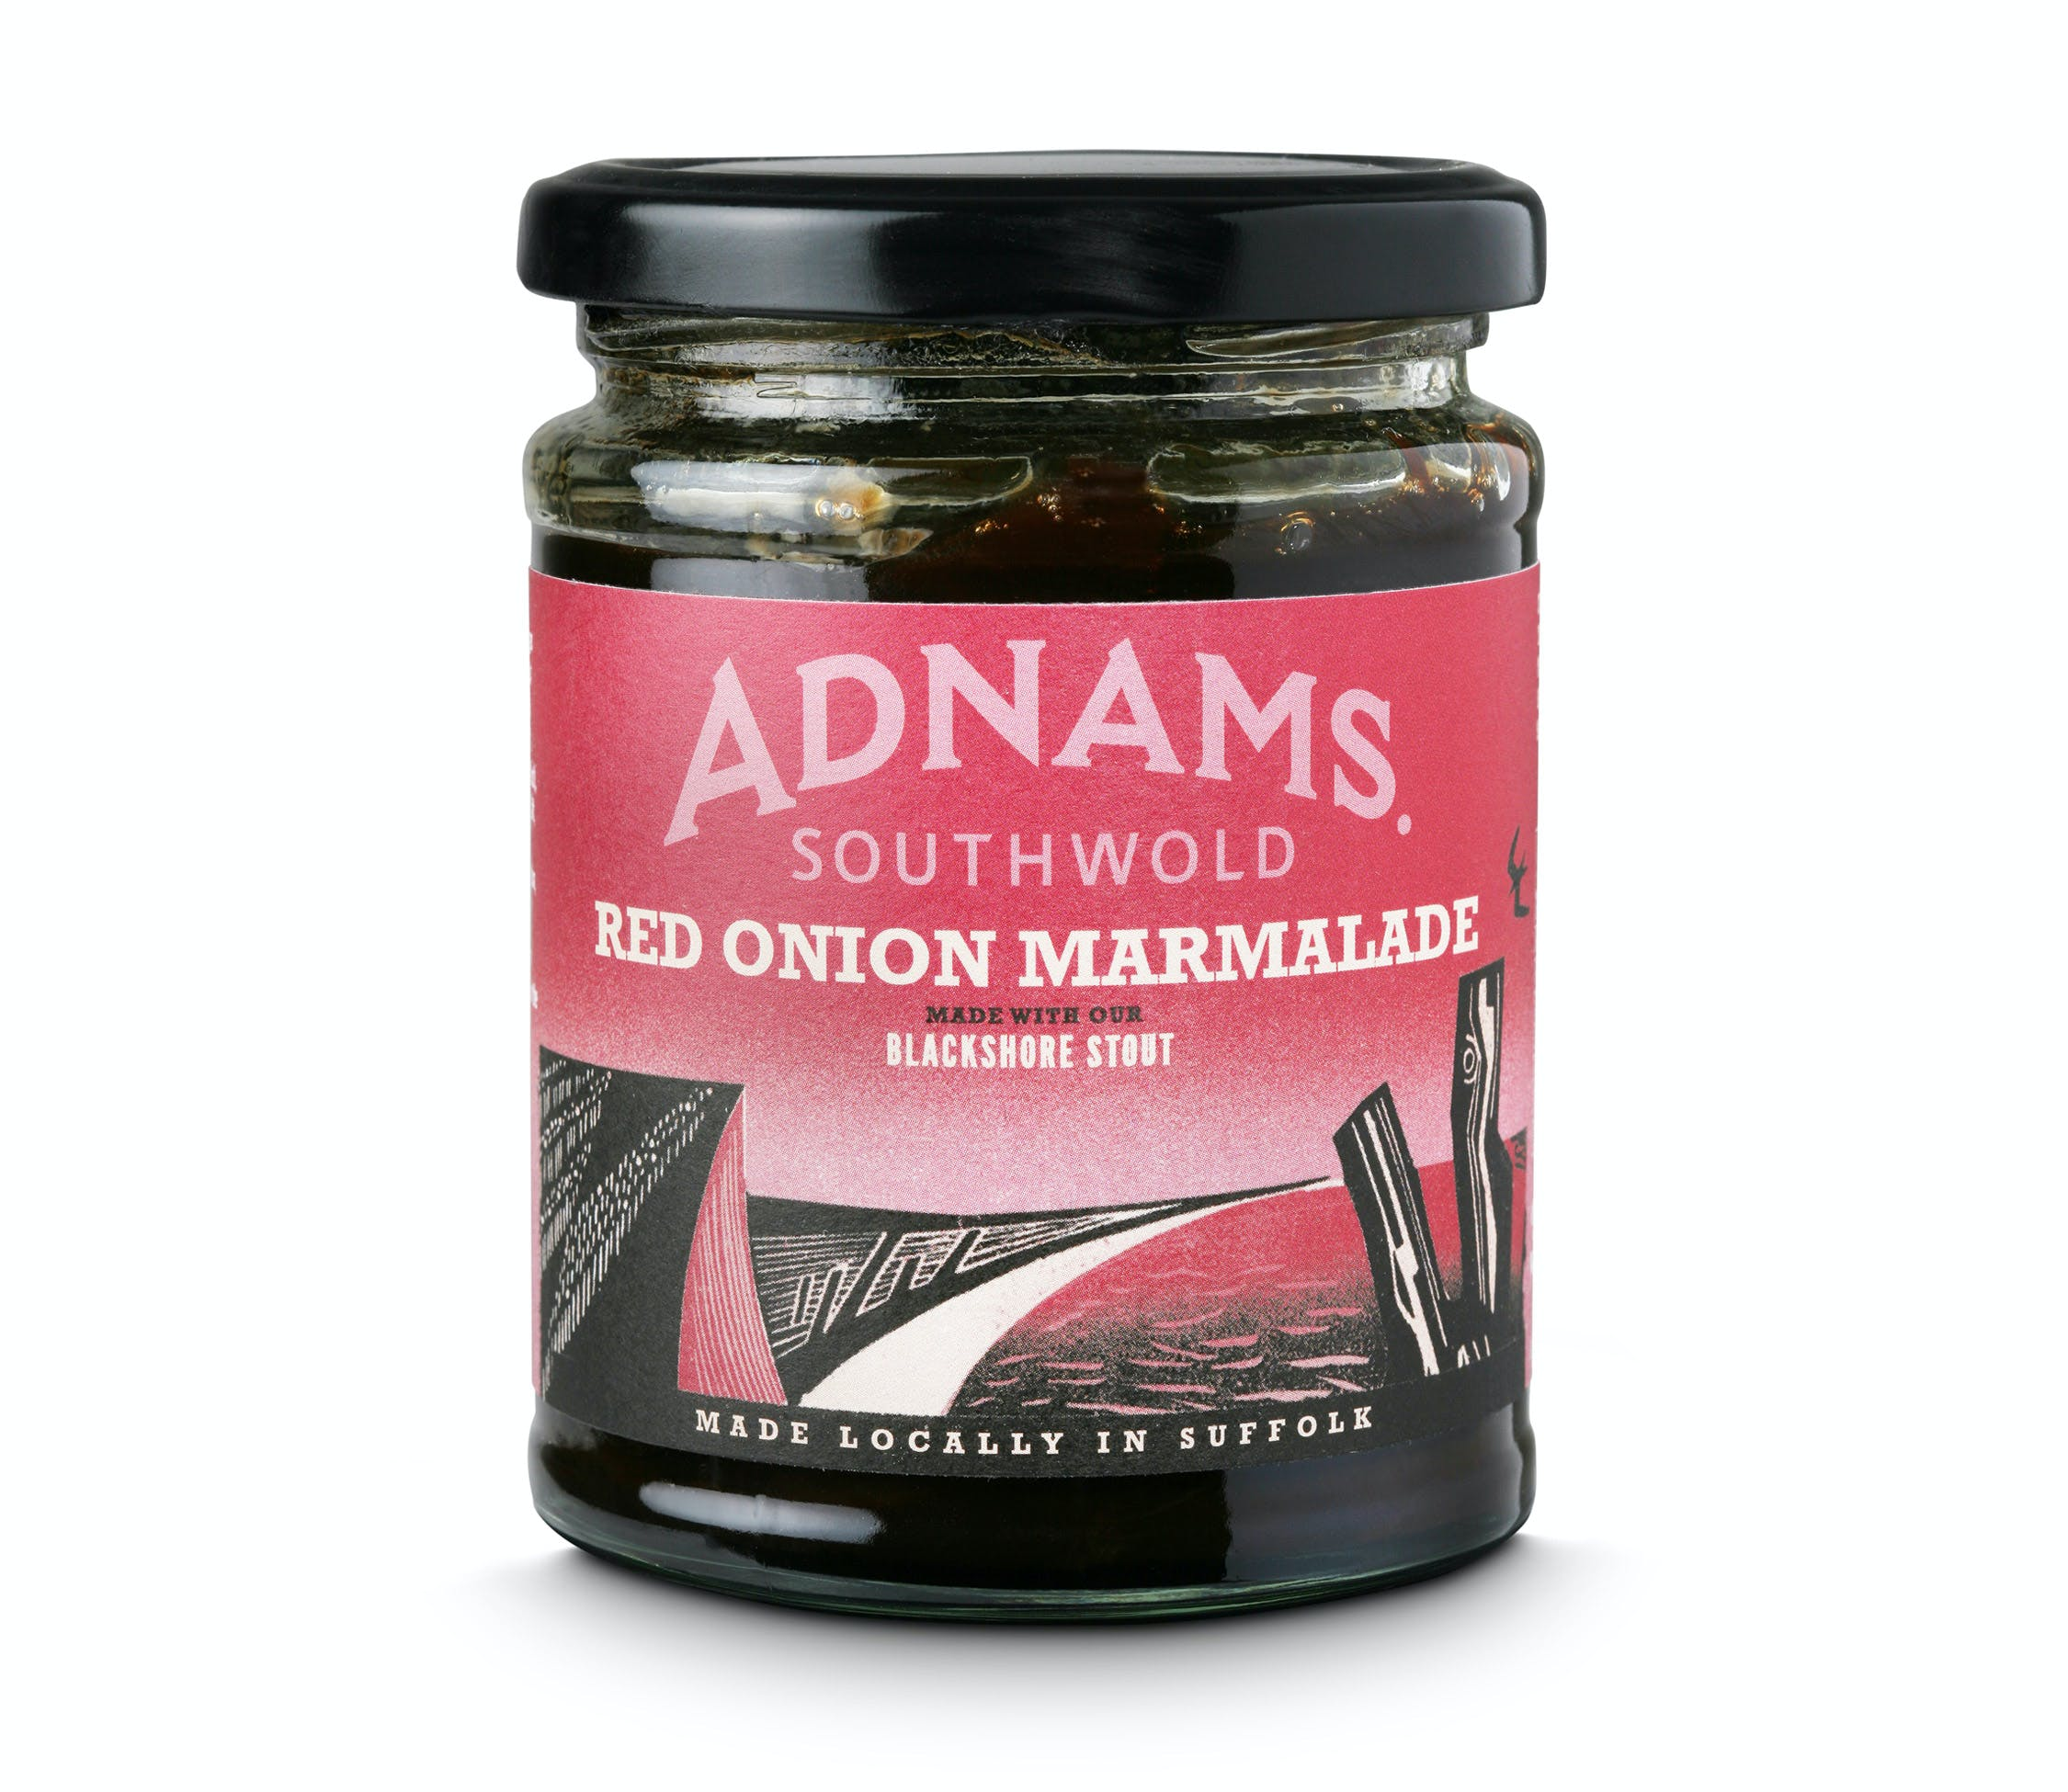 Stockists of Adnams Red Onion Marmalade